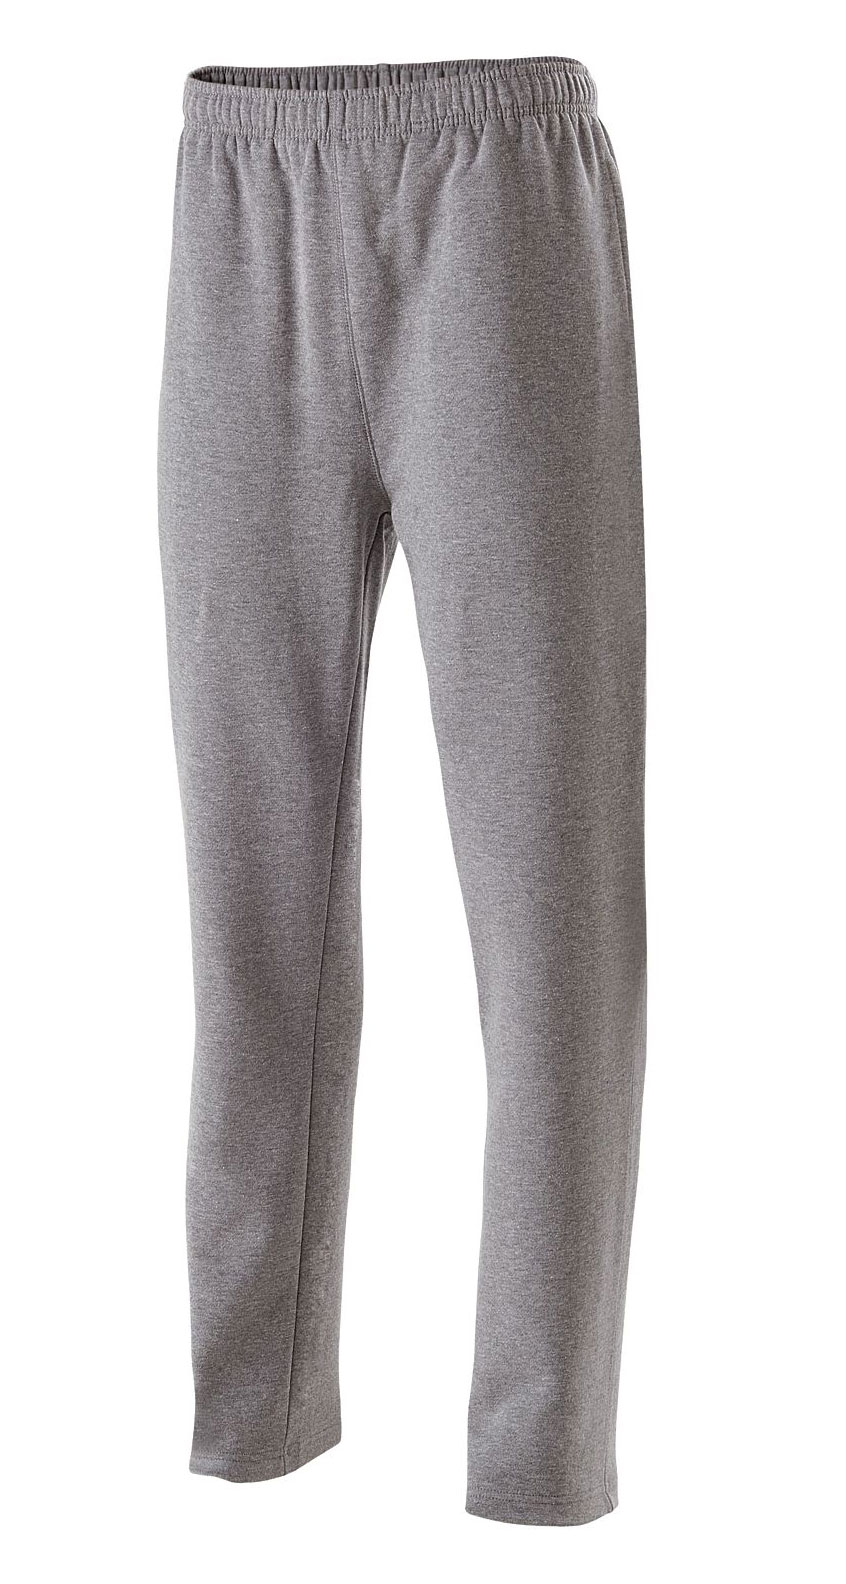 Adult 60/40 Fleece Pant